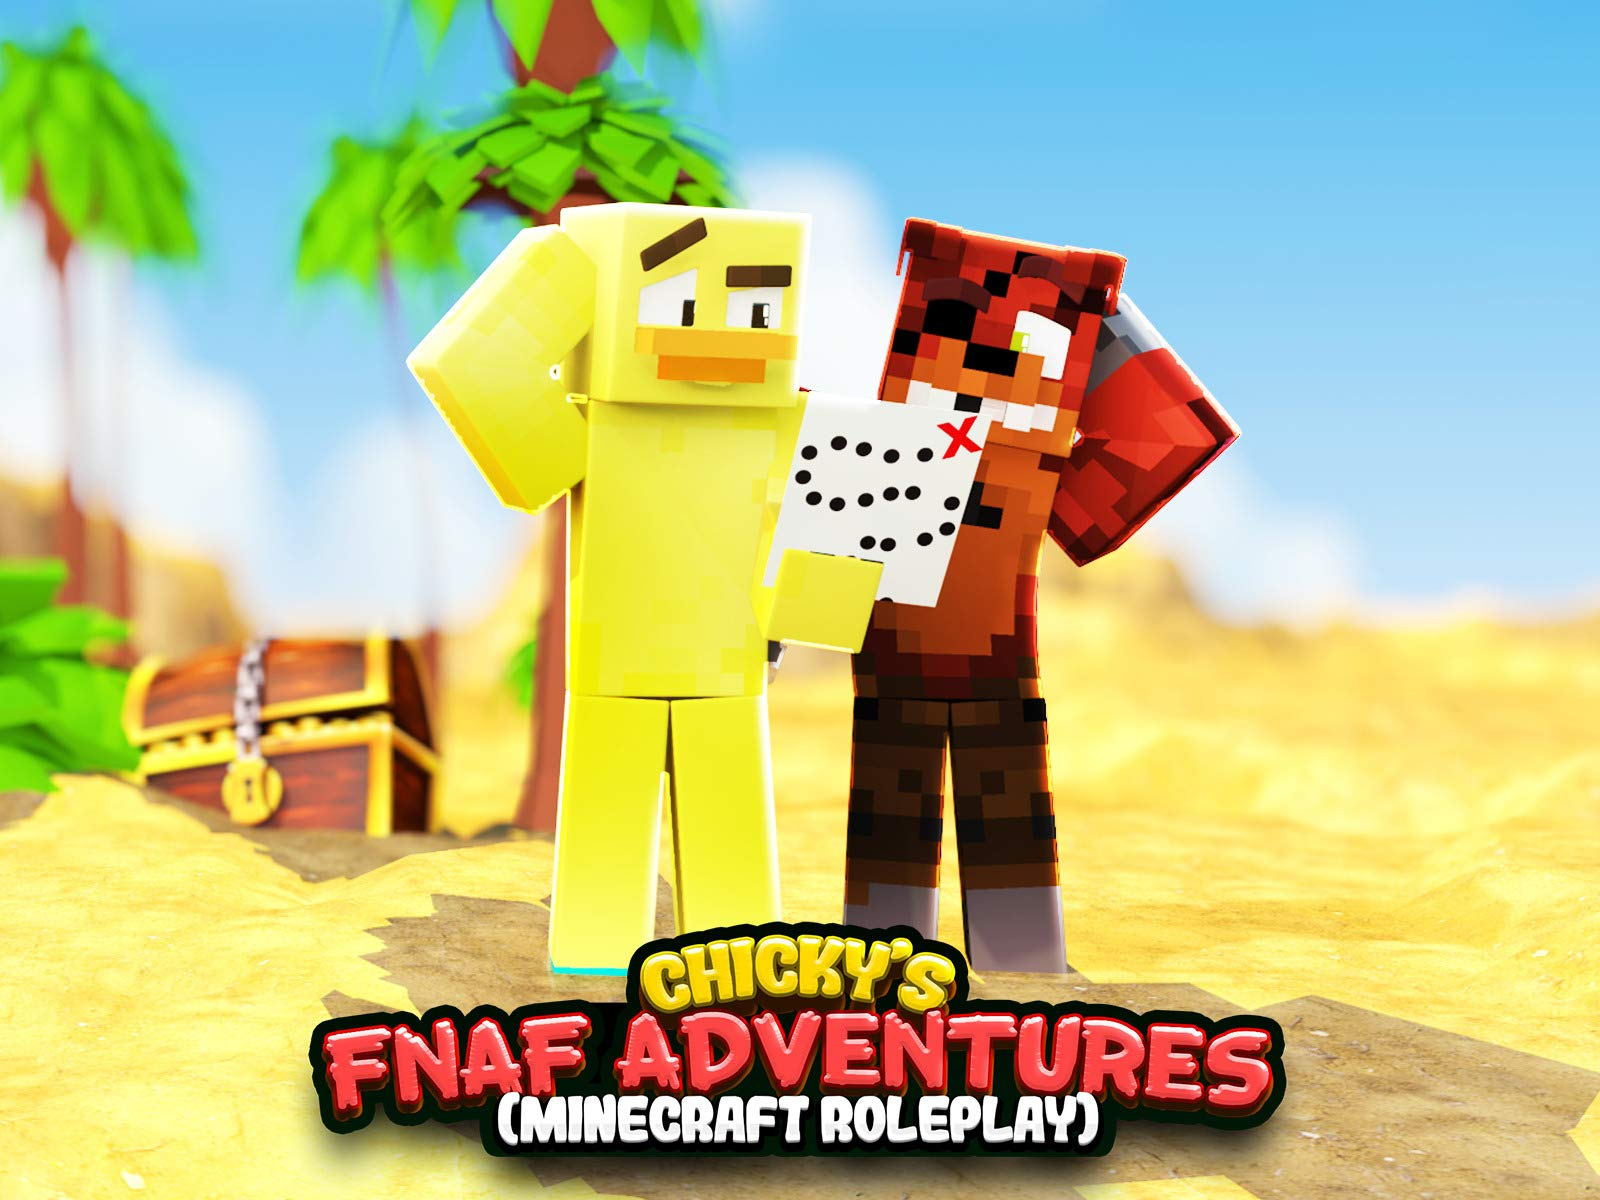 Chicky's F.N.A.F. Adventures (Minecraft Roleplay) - Season 3